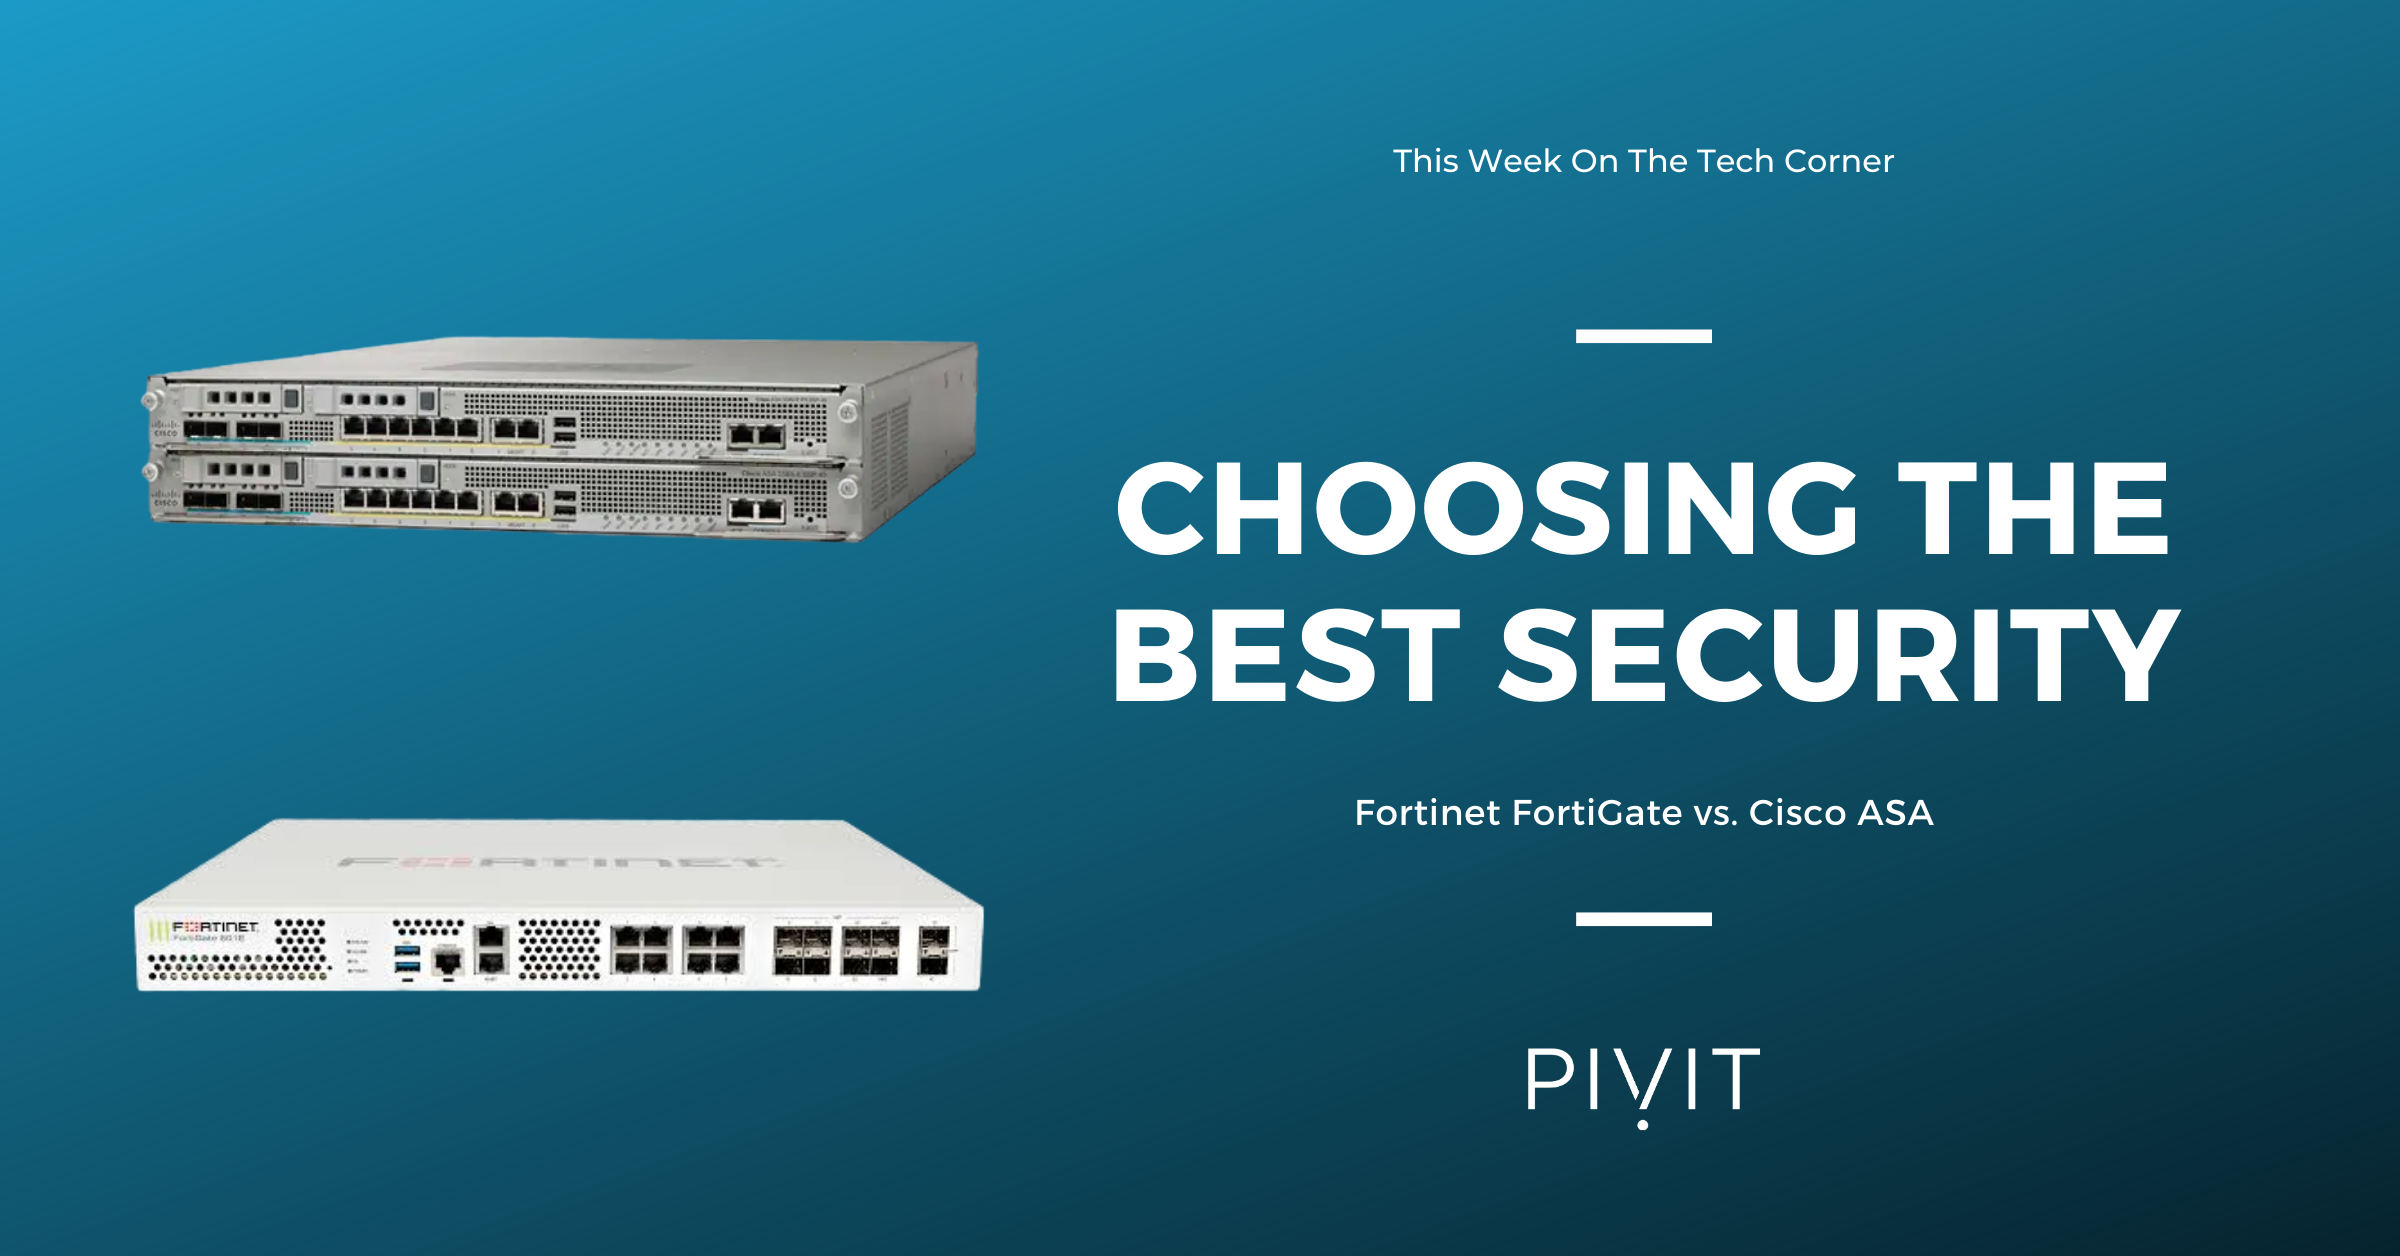 Your Best Security System: Cisco ASA vs. Fortinet FortiGate